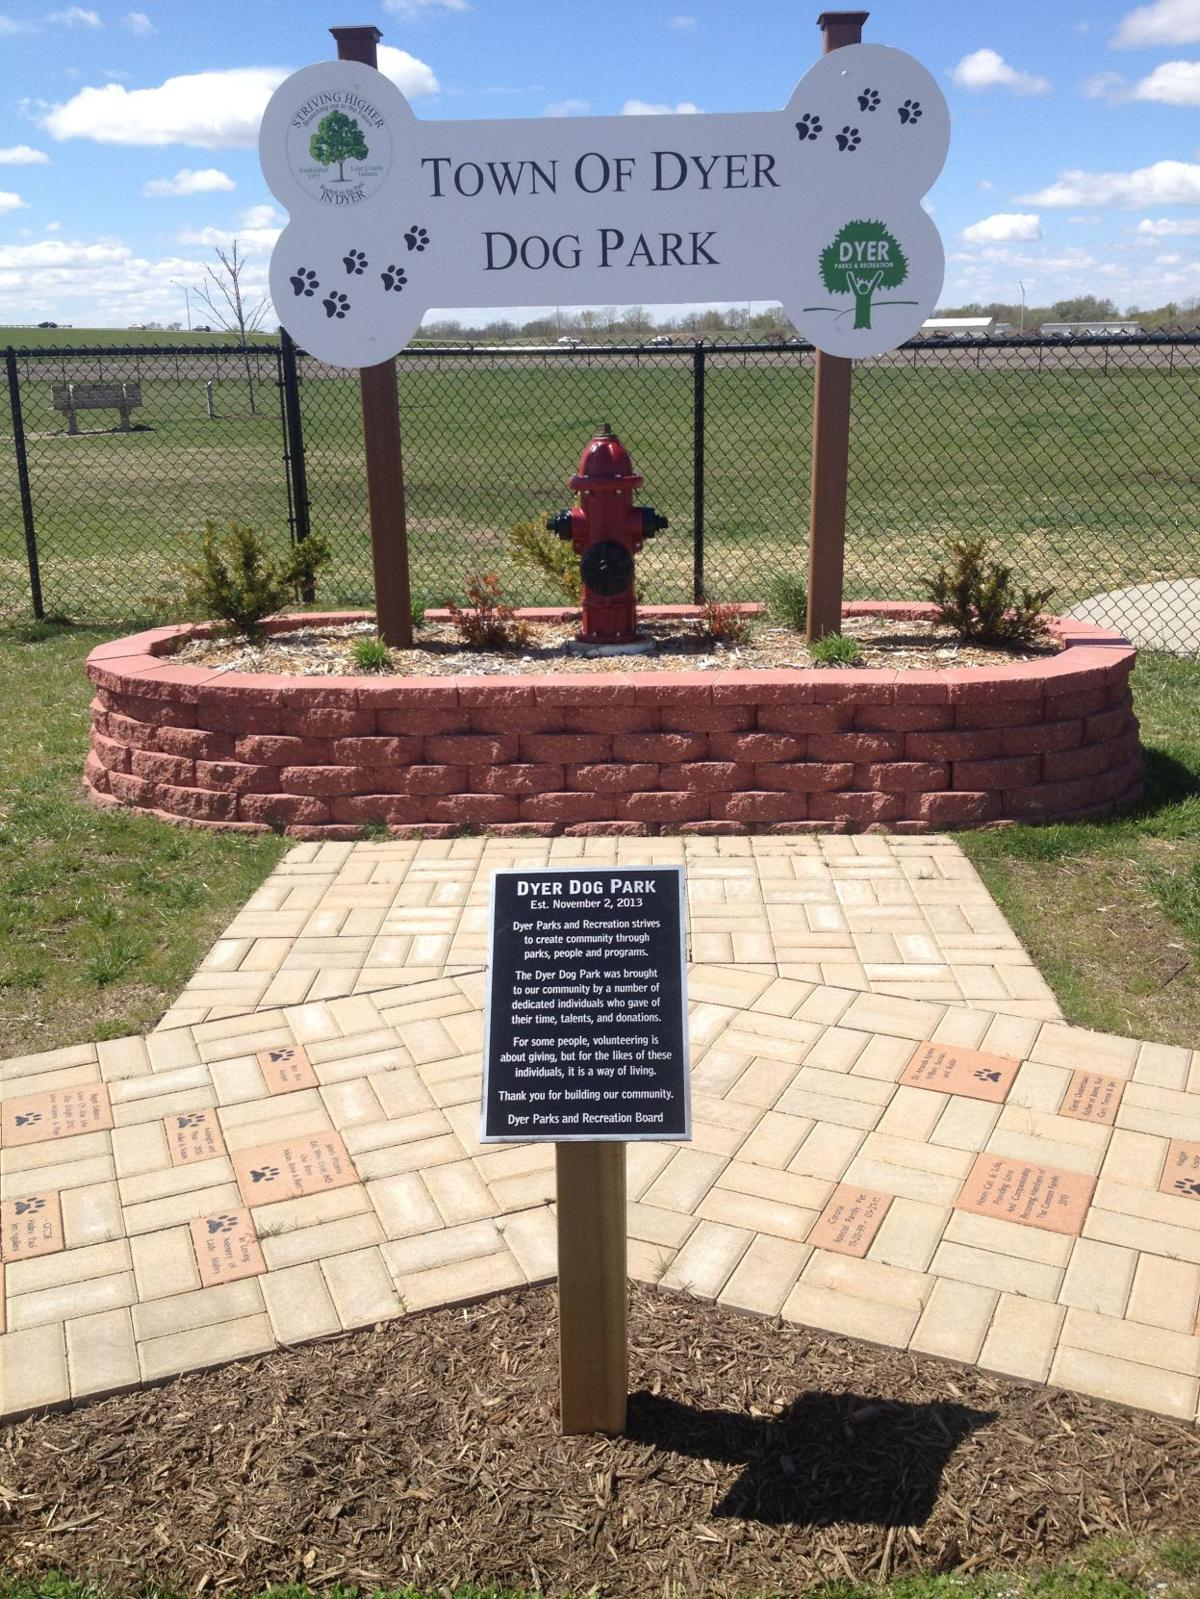 Dyer parks provide recreational opportunities for residents—and their dogs